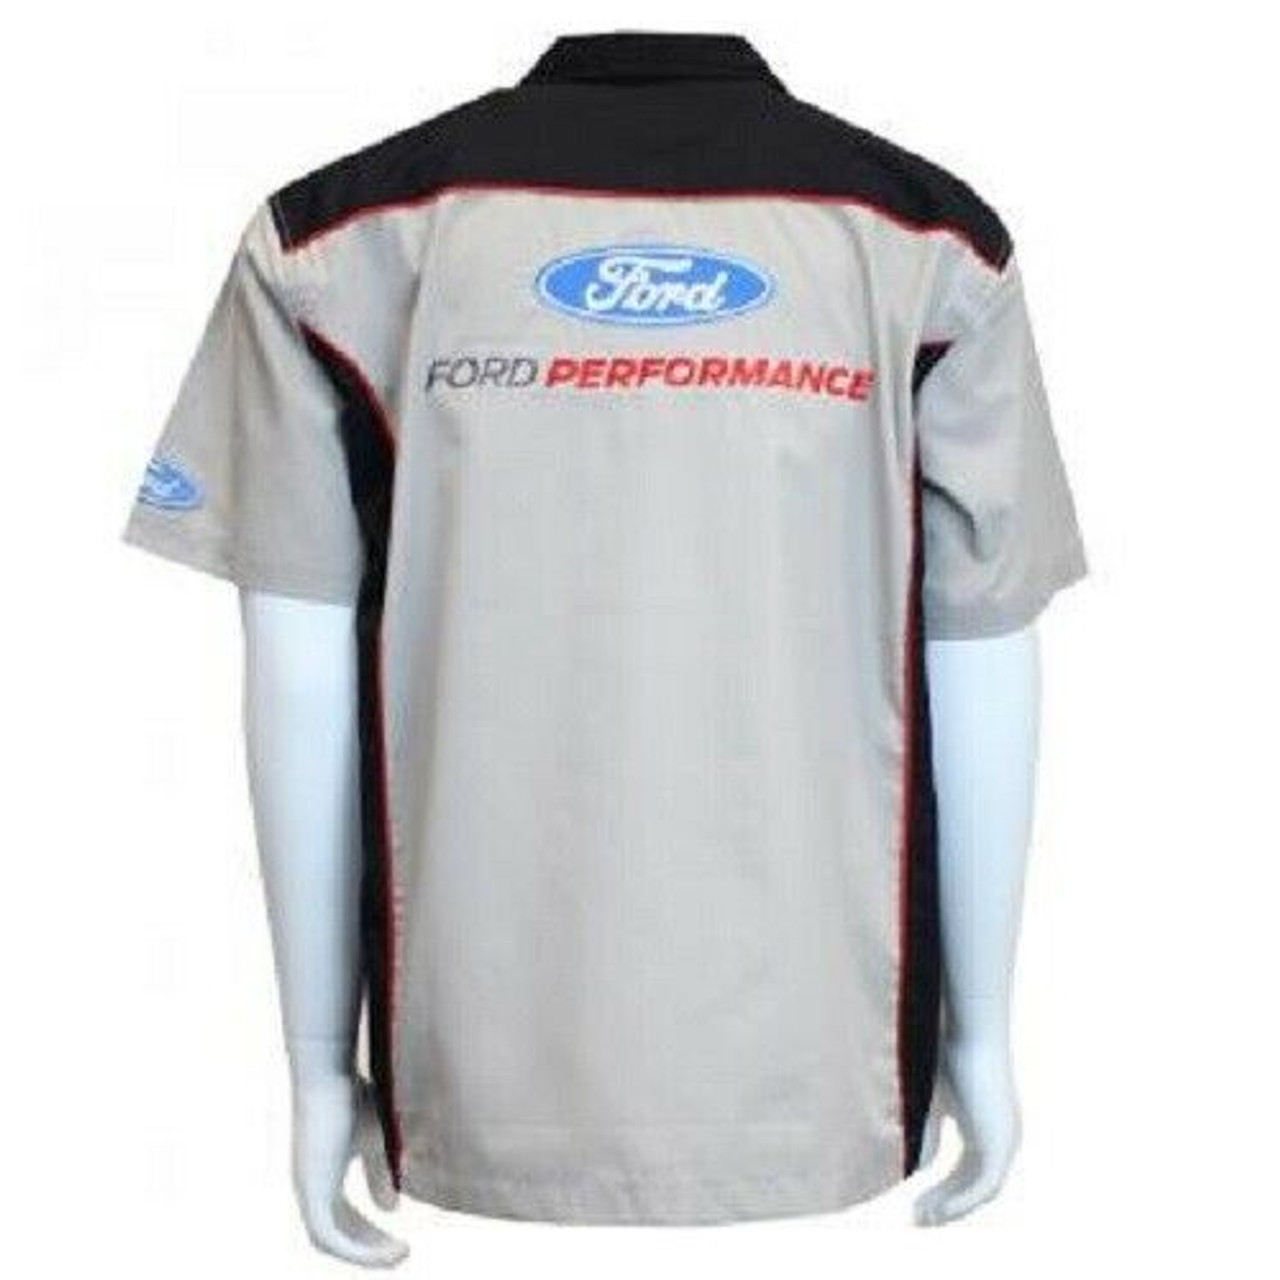 NEW CUSTOM DICKIES NAVY EMBROIDERED FORD MUSTANG GT LOGO MECHANIC WORK SHIRT